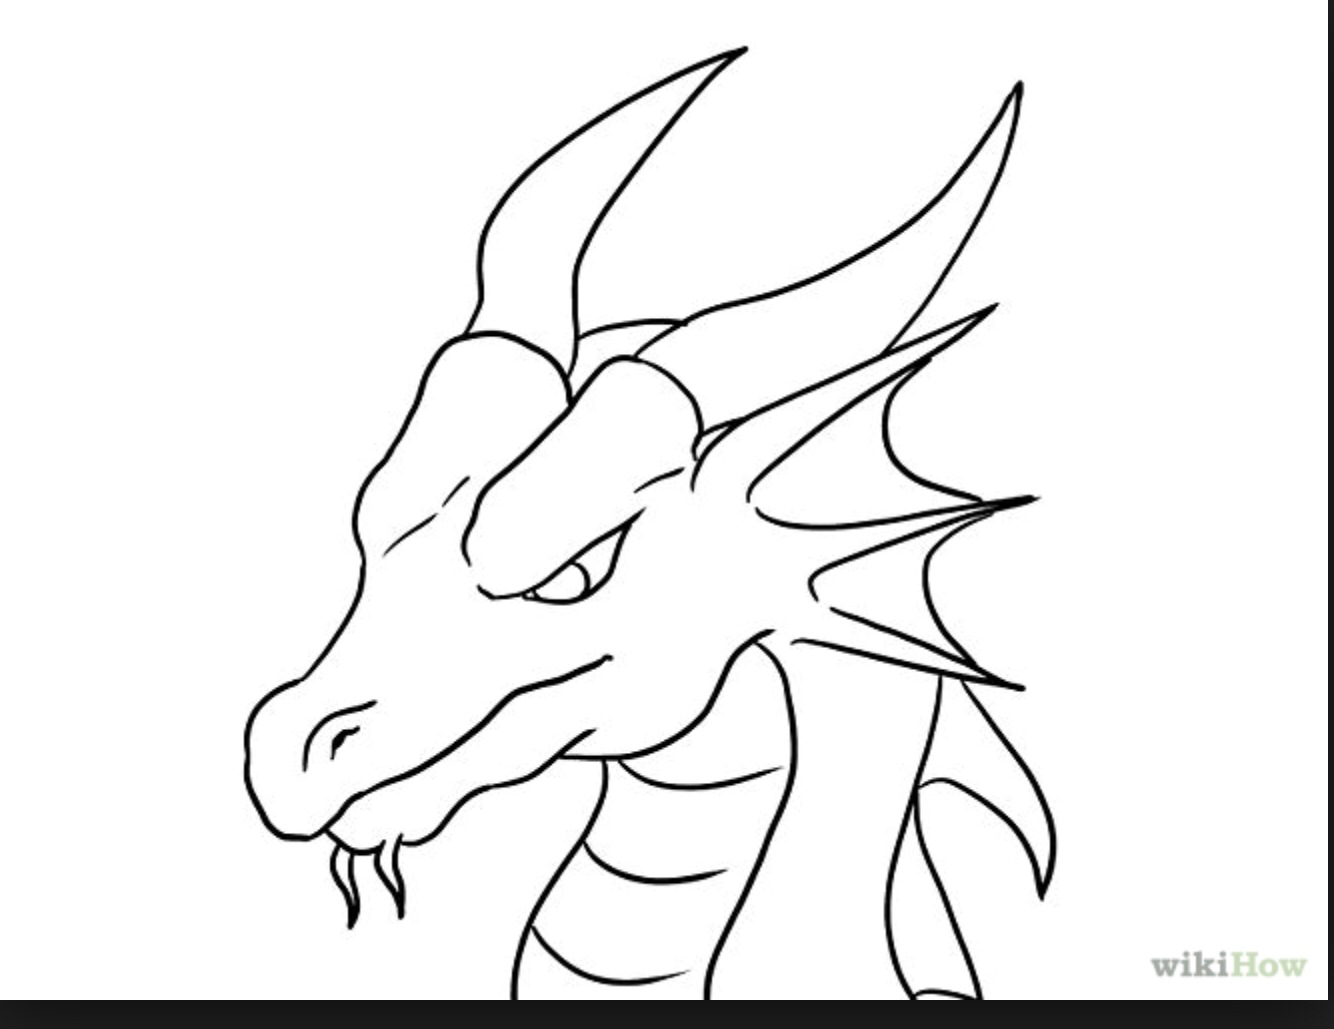 Drawn simple dragon Pinterest Easy  Pinterest Drawings